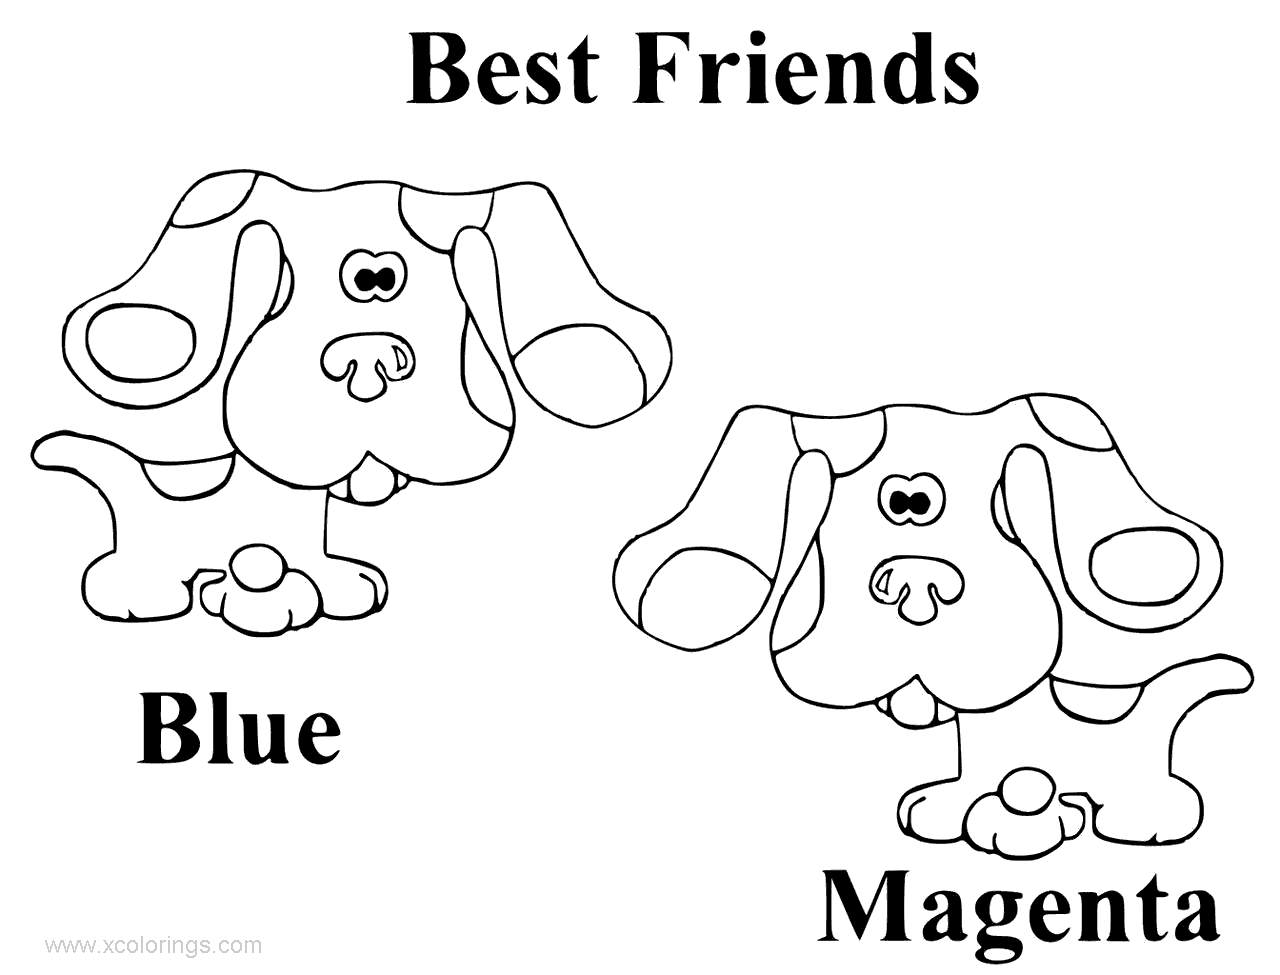 Best Friends From Blues Clues Coloring Pages Xcolorings Com